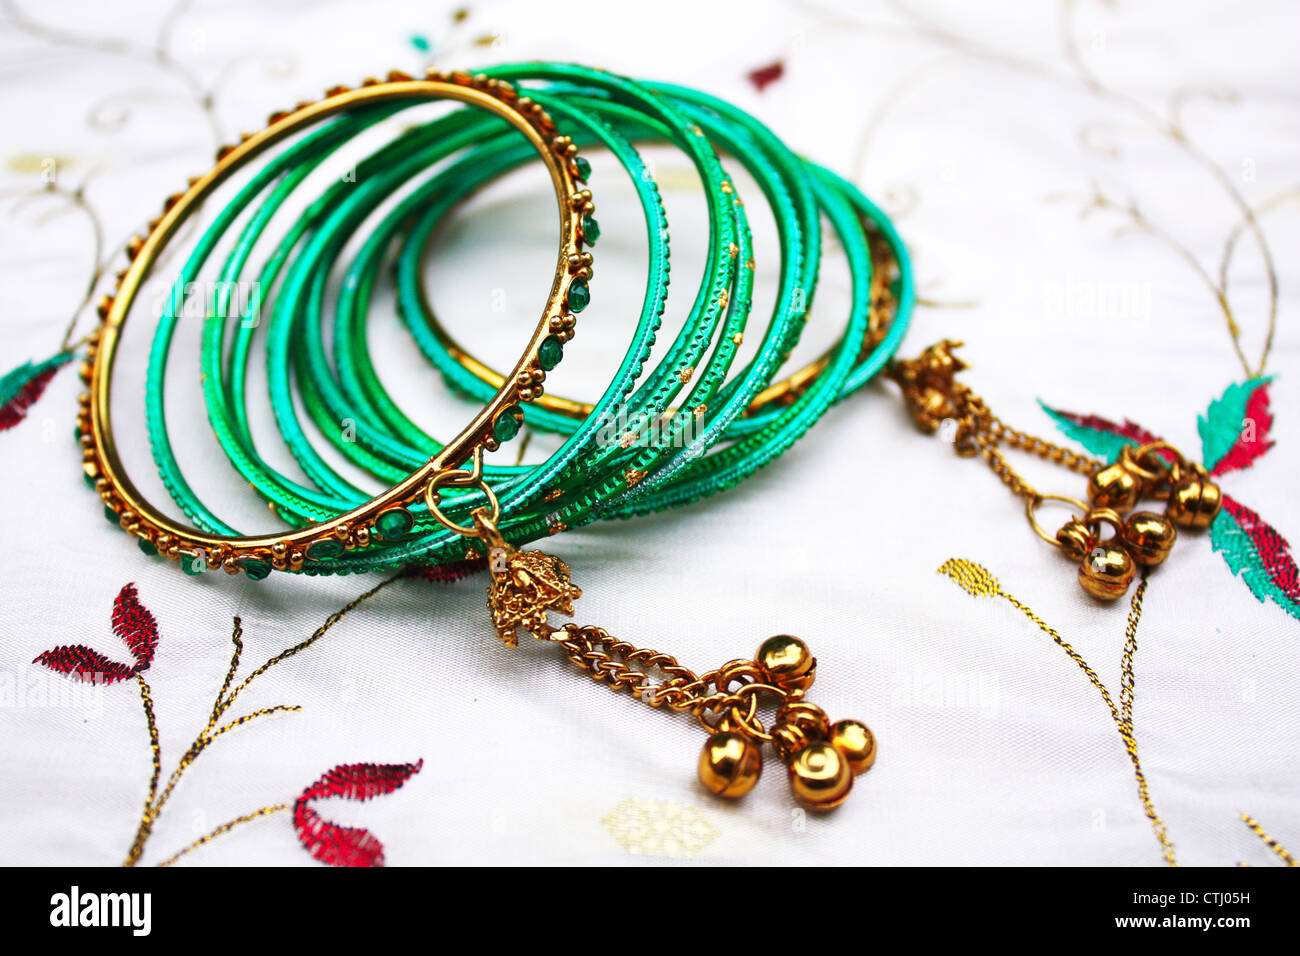 Indian green ornamental bangles - Stock Image